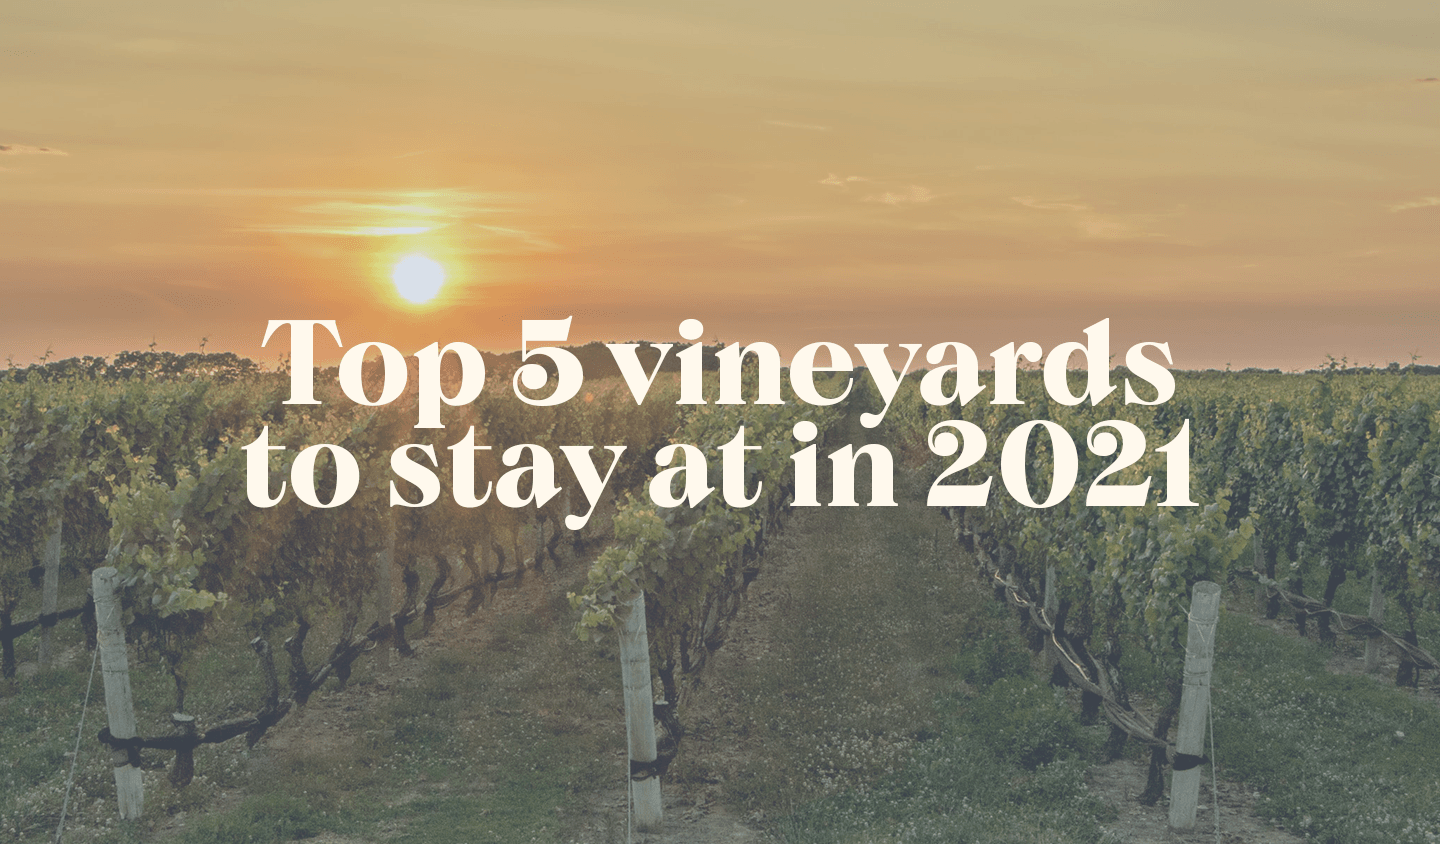 The top 5 vineyards to stay at this year